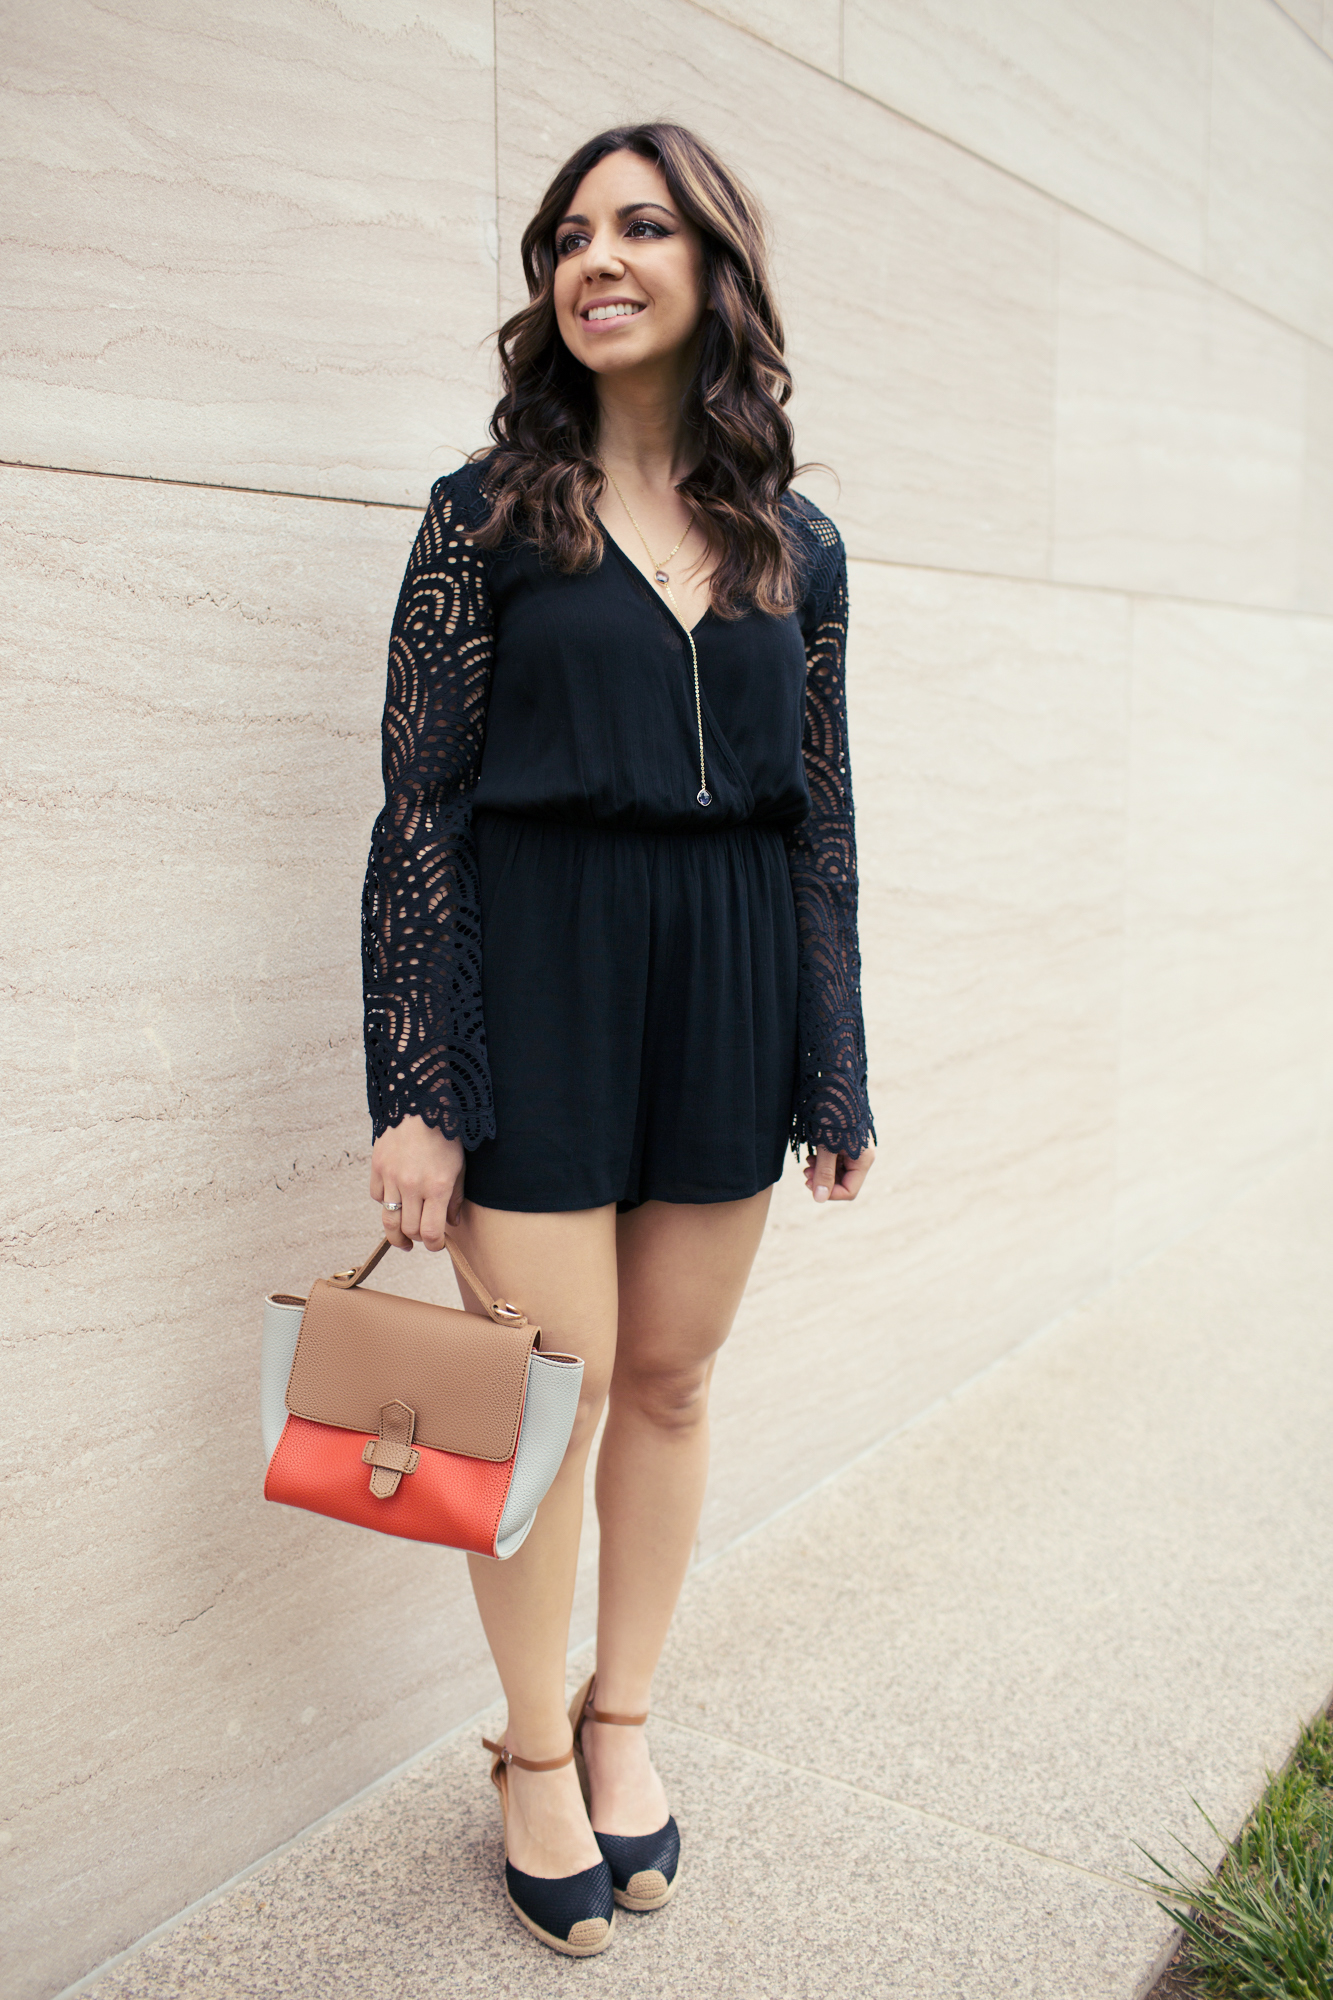 Lifestyle blogger Roxanne of Glass of Glam wearing a Sugarlips Romper and Zaful bag